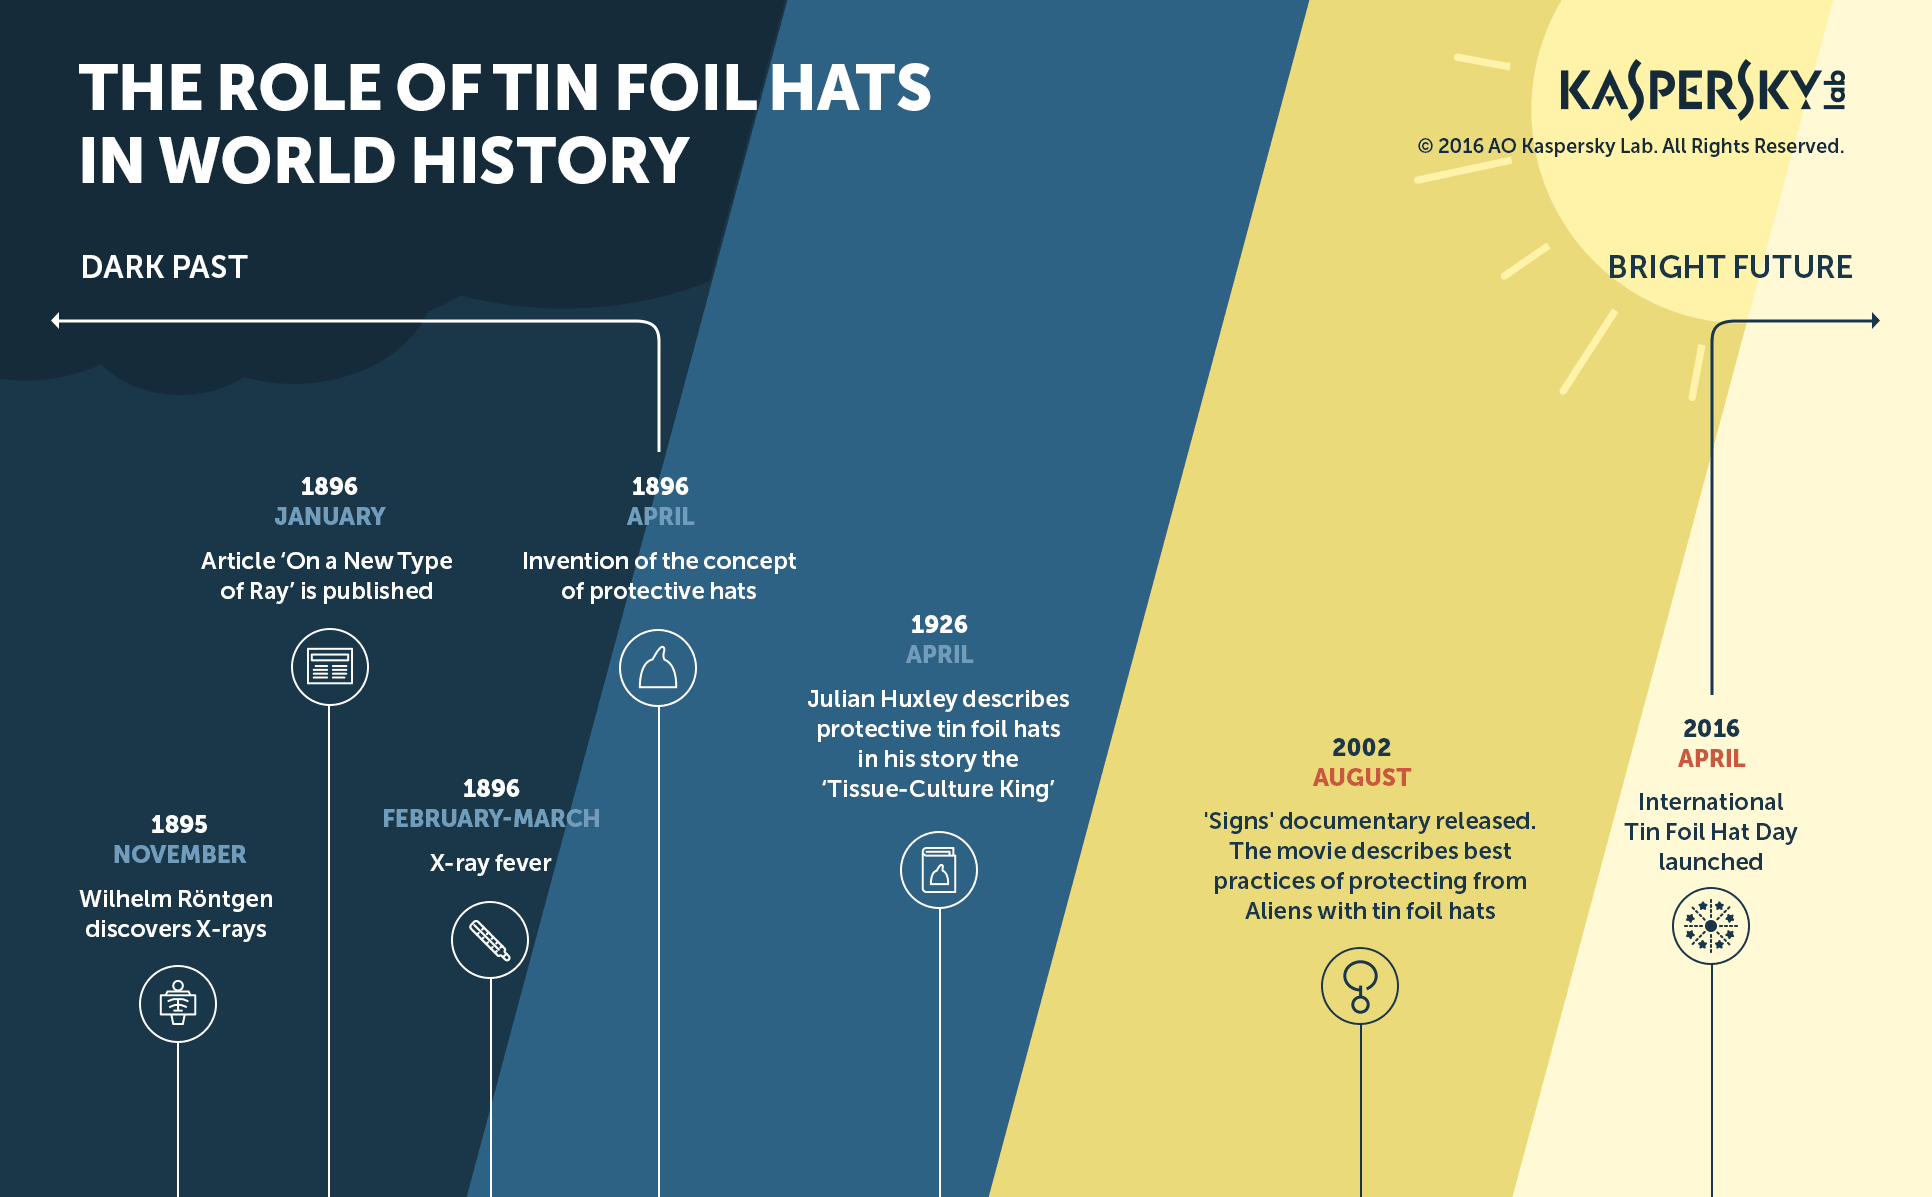 The role of tin foil hat in world history